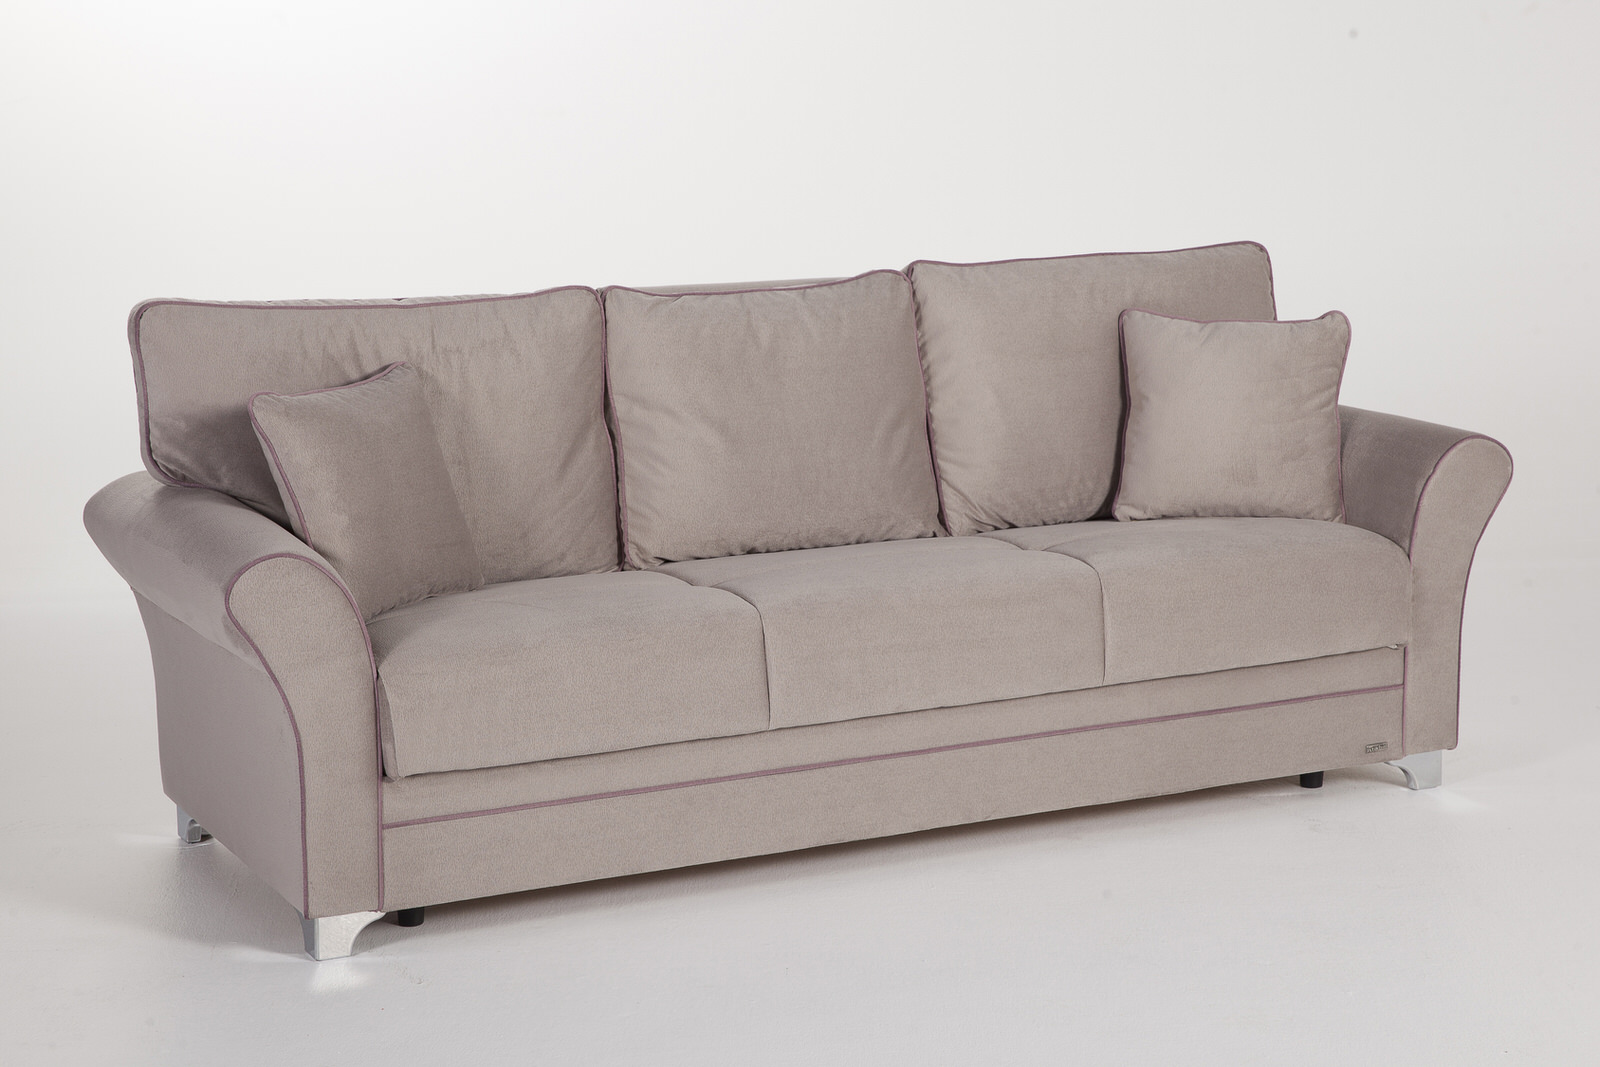 Padova paris gray convertible sofa bed by sunset for Convertible paris